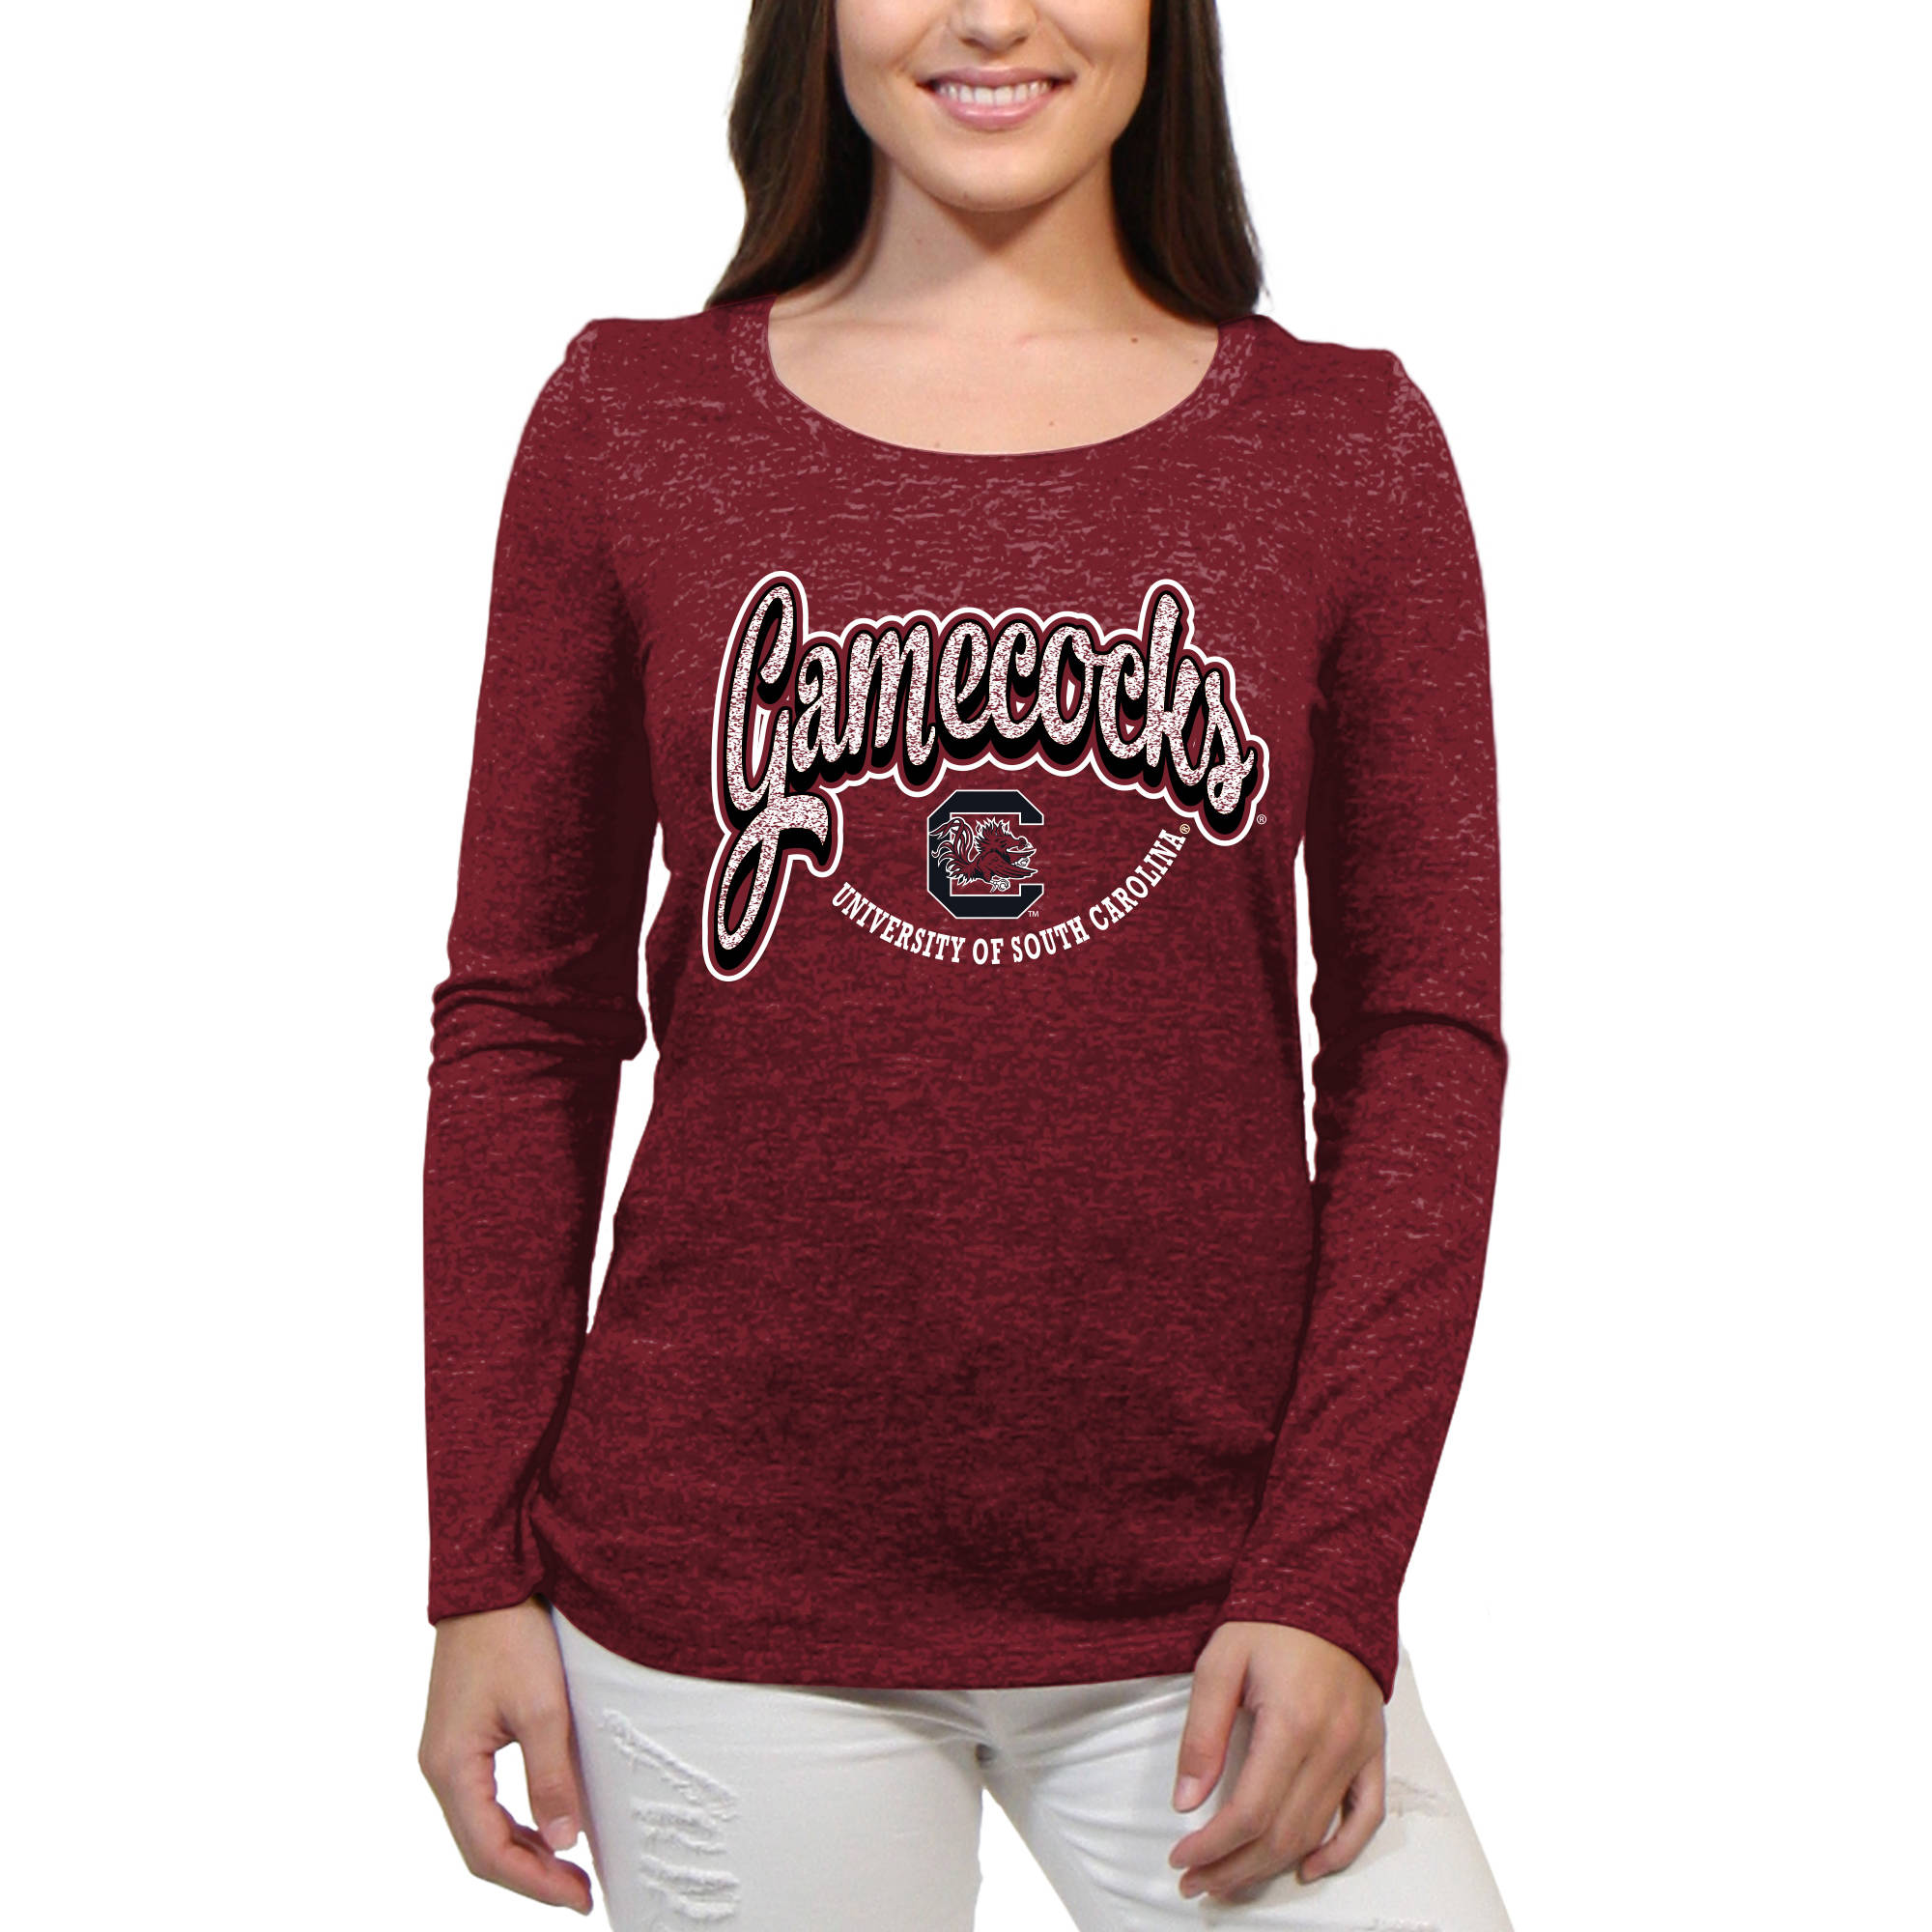 South Carolina Gamecocks Funky Script Women'S/Juniors Team Long Sleeve Scoop Neck Shirt